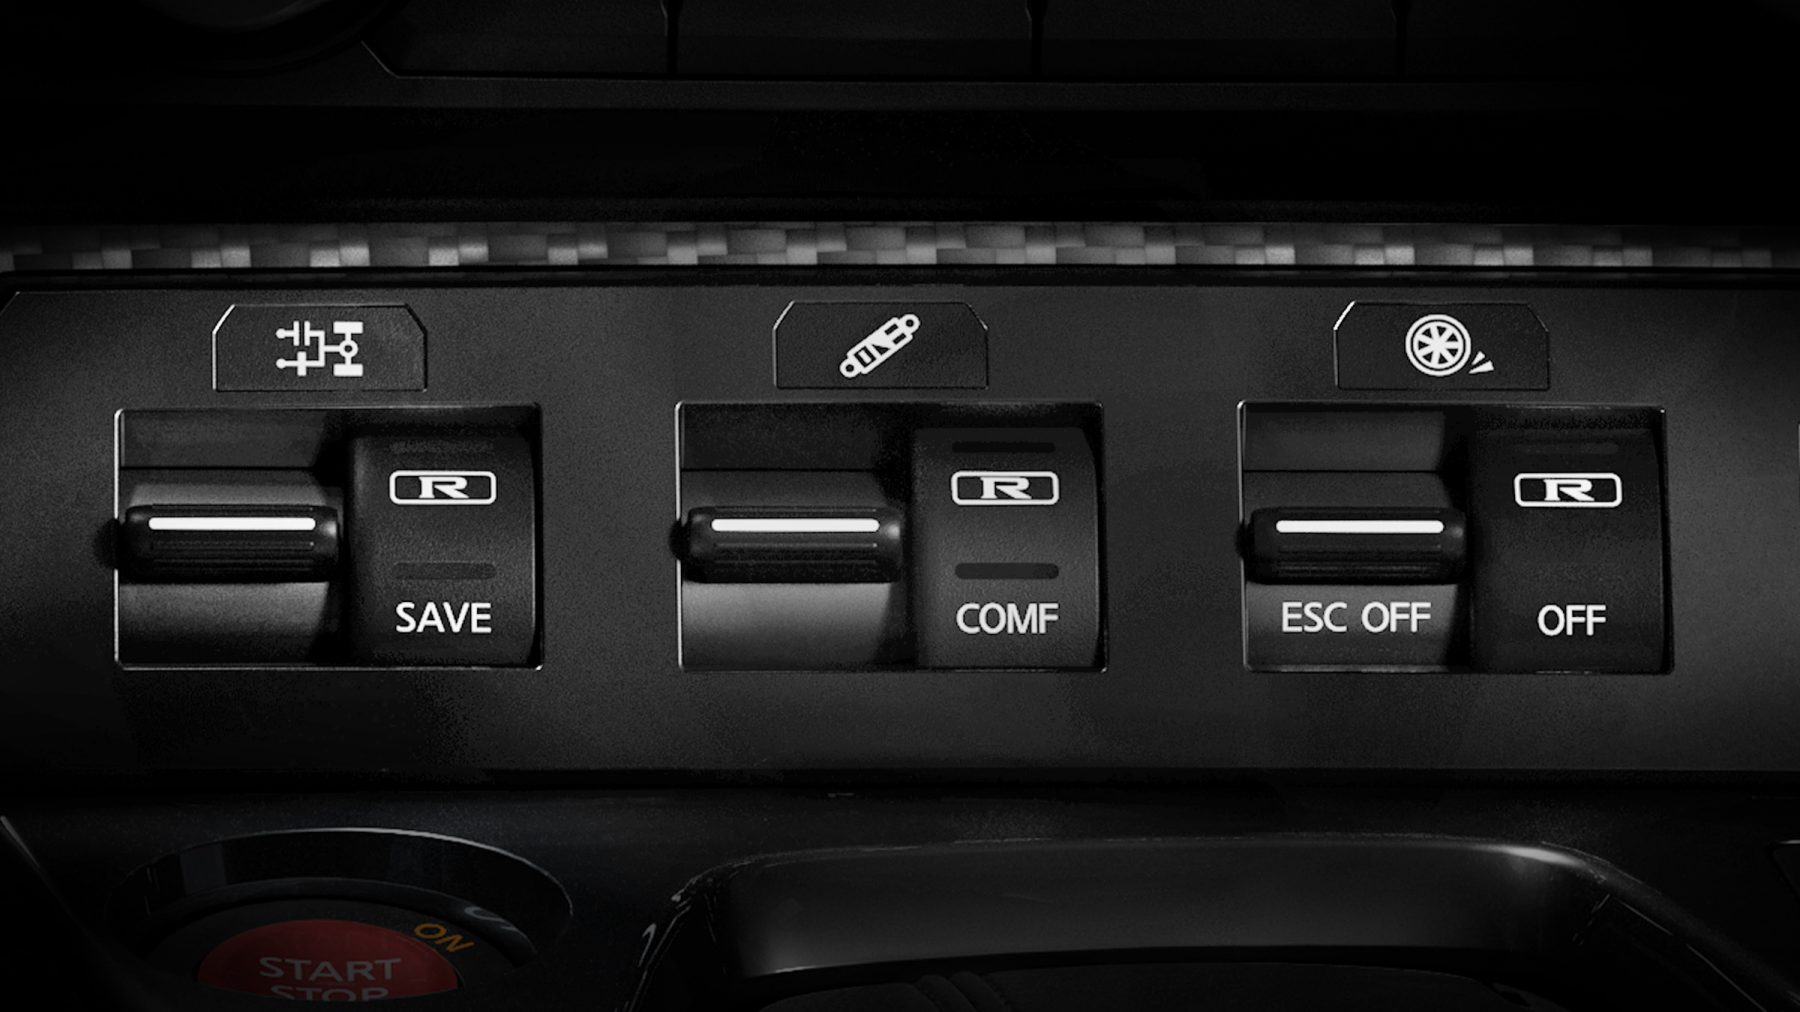 Nissan GT-R 3-mode switch NORMAL MODE